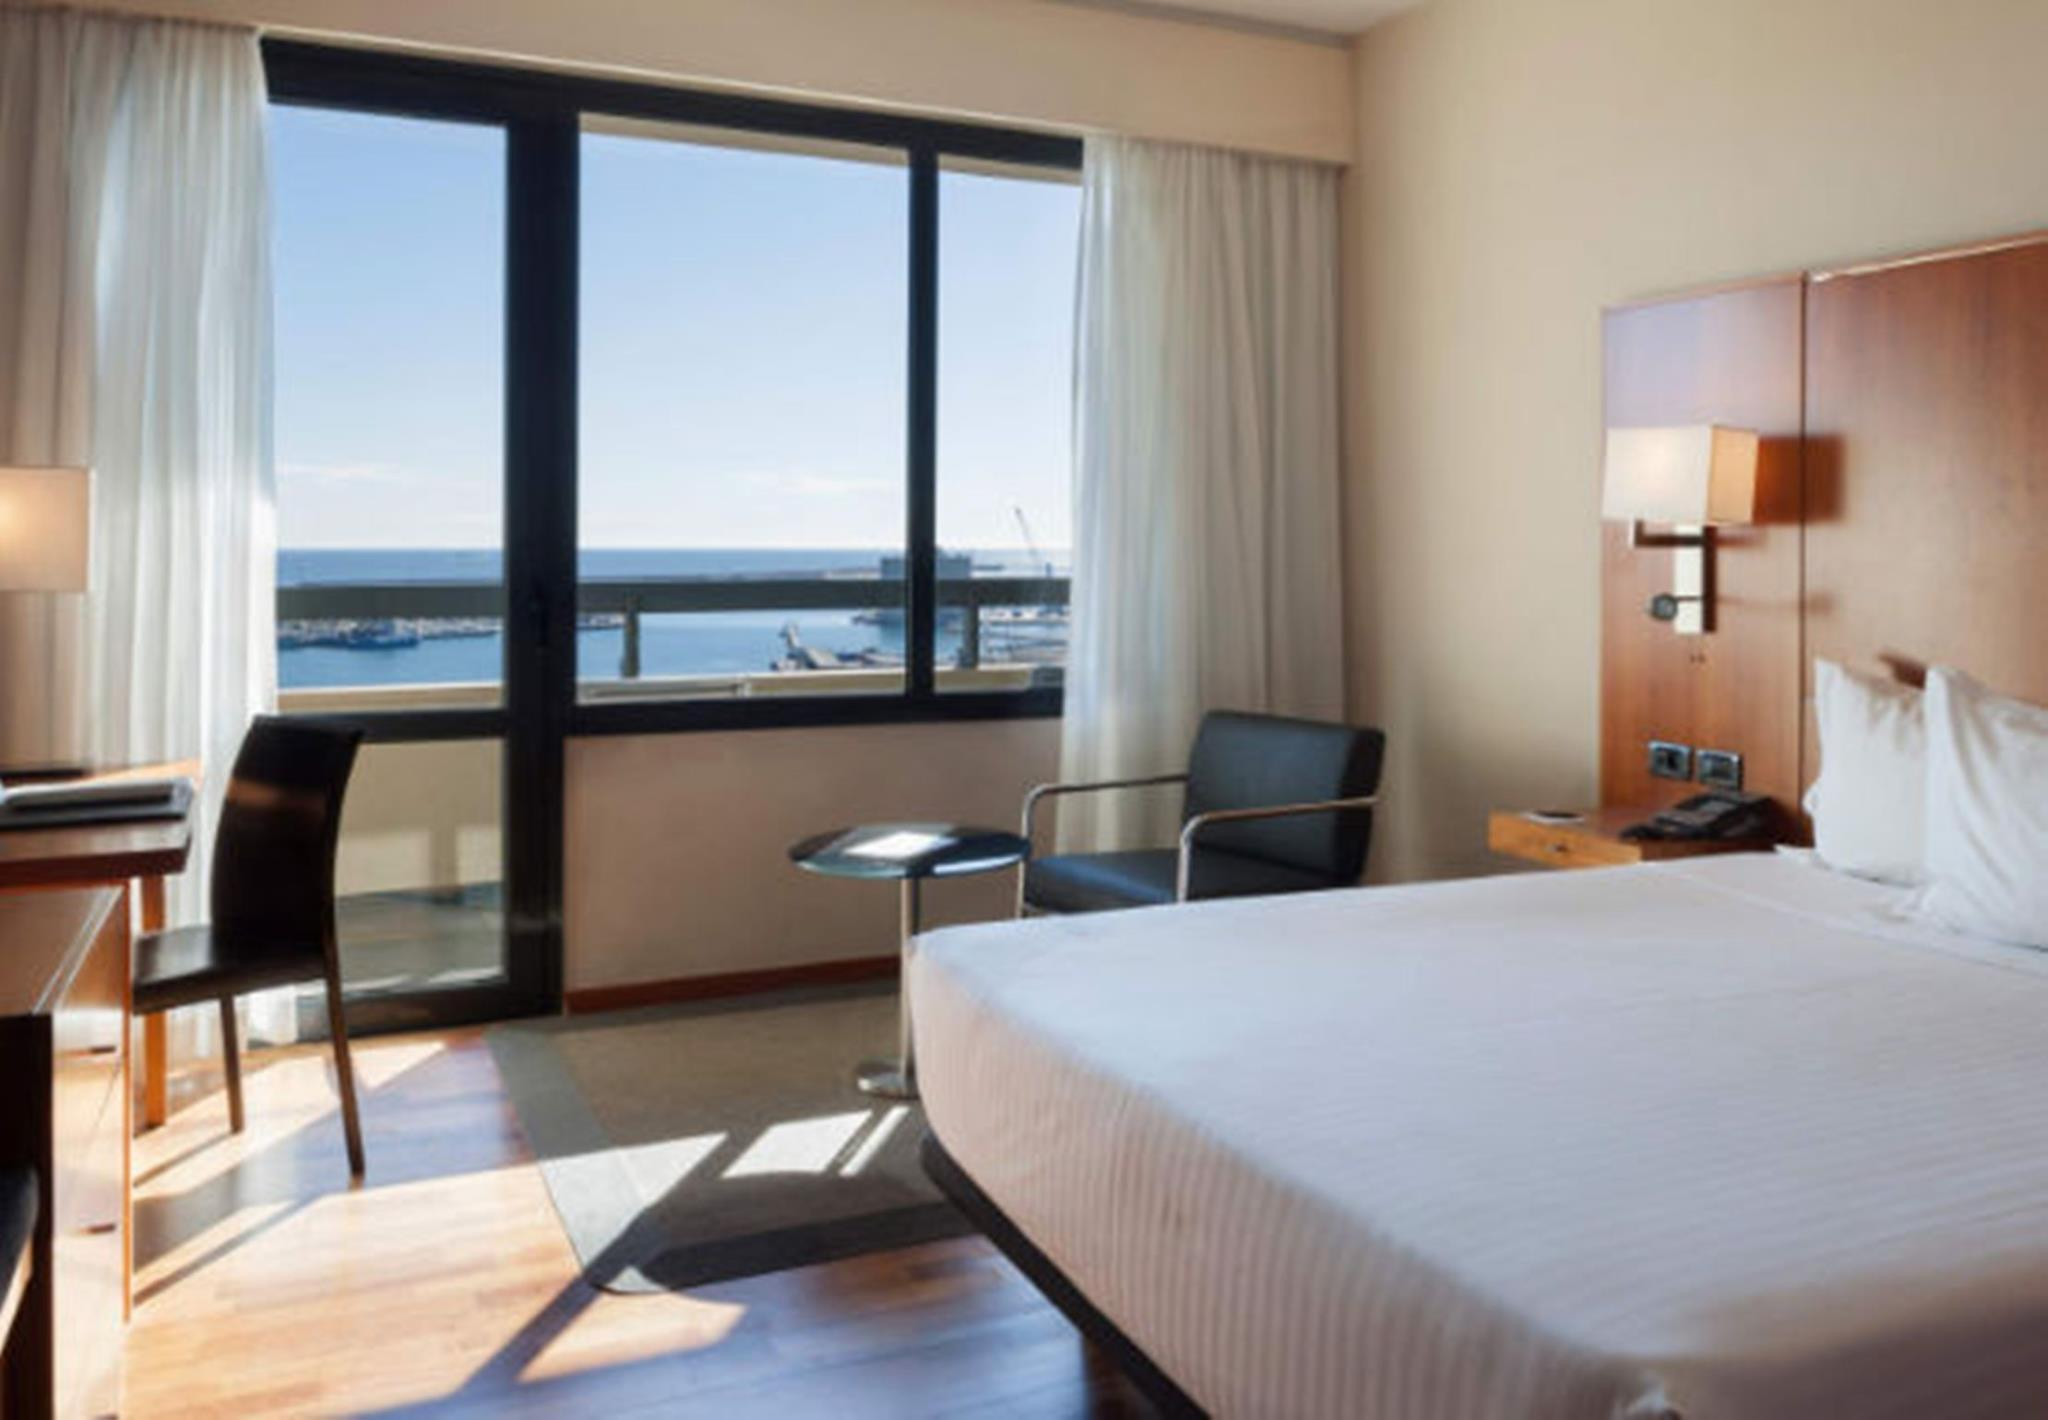 Standard View, Guest room, 1 King or 2 Twin/Single Bed(s)